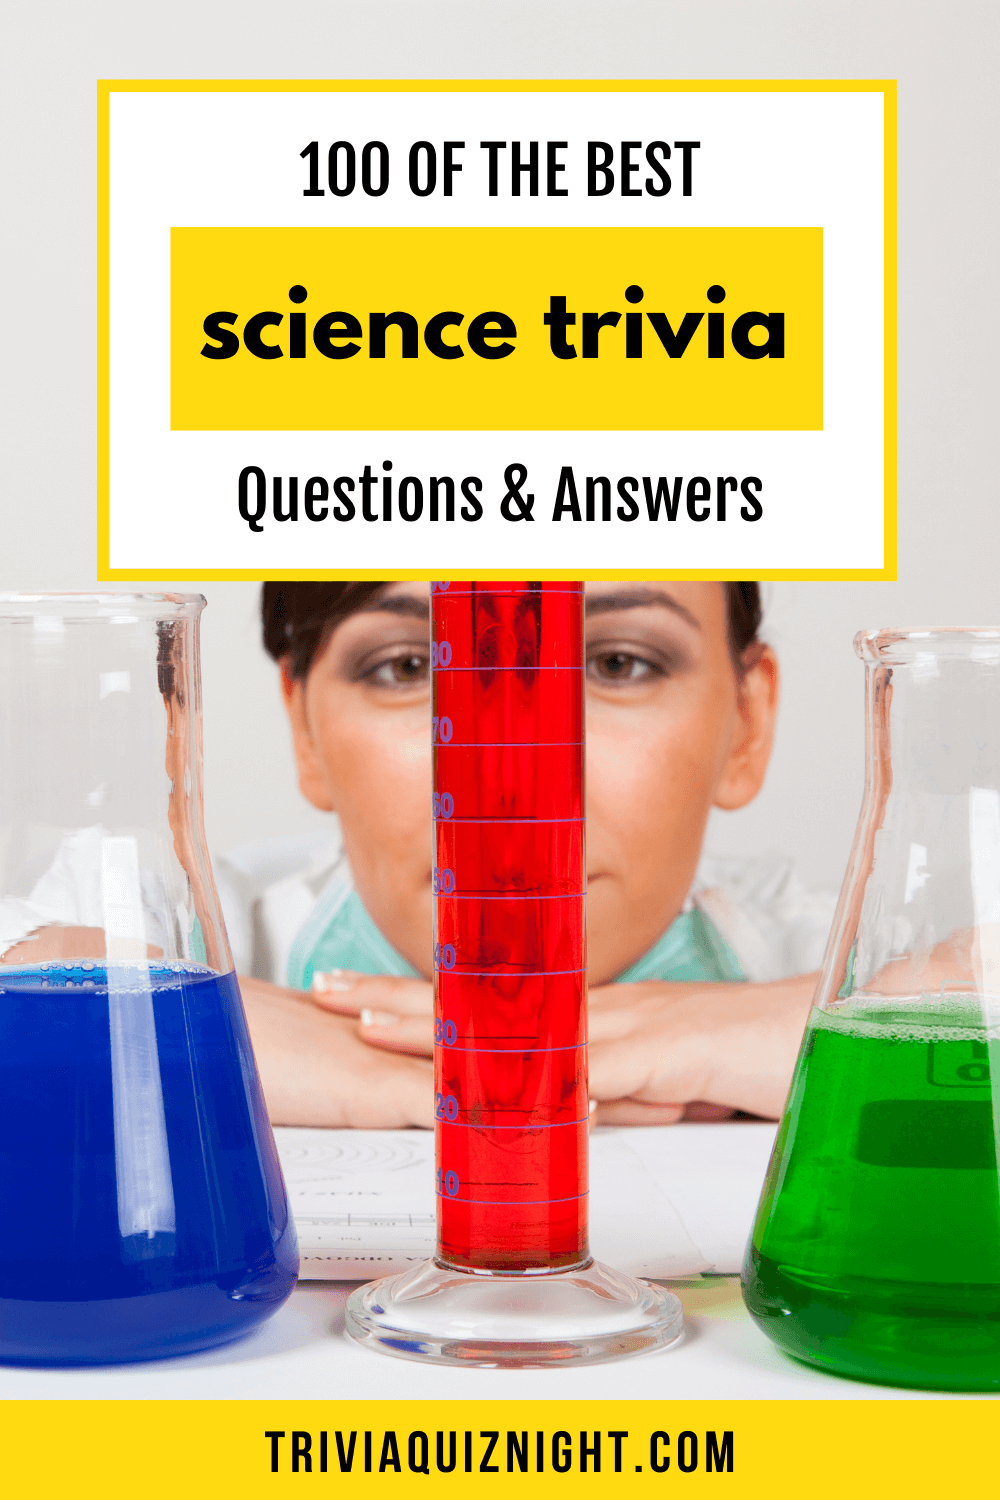 All the best science trivia questions and answers for your quiz night